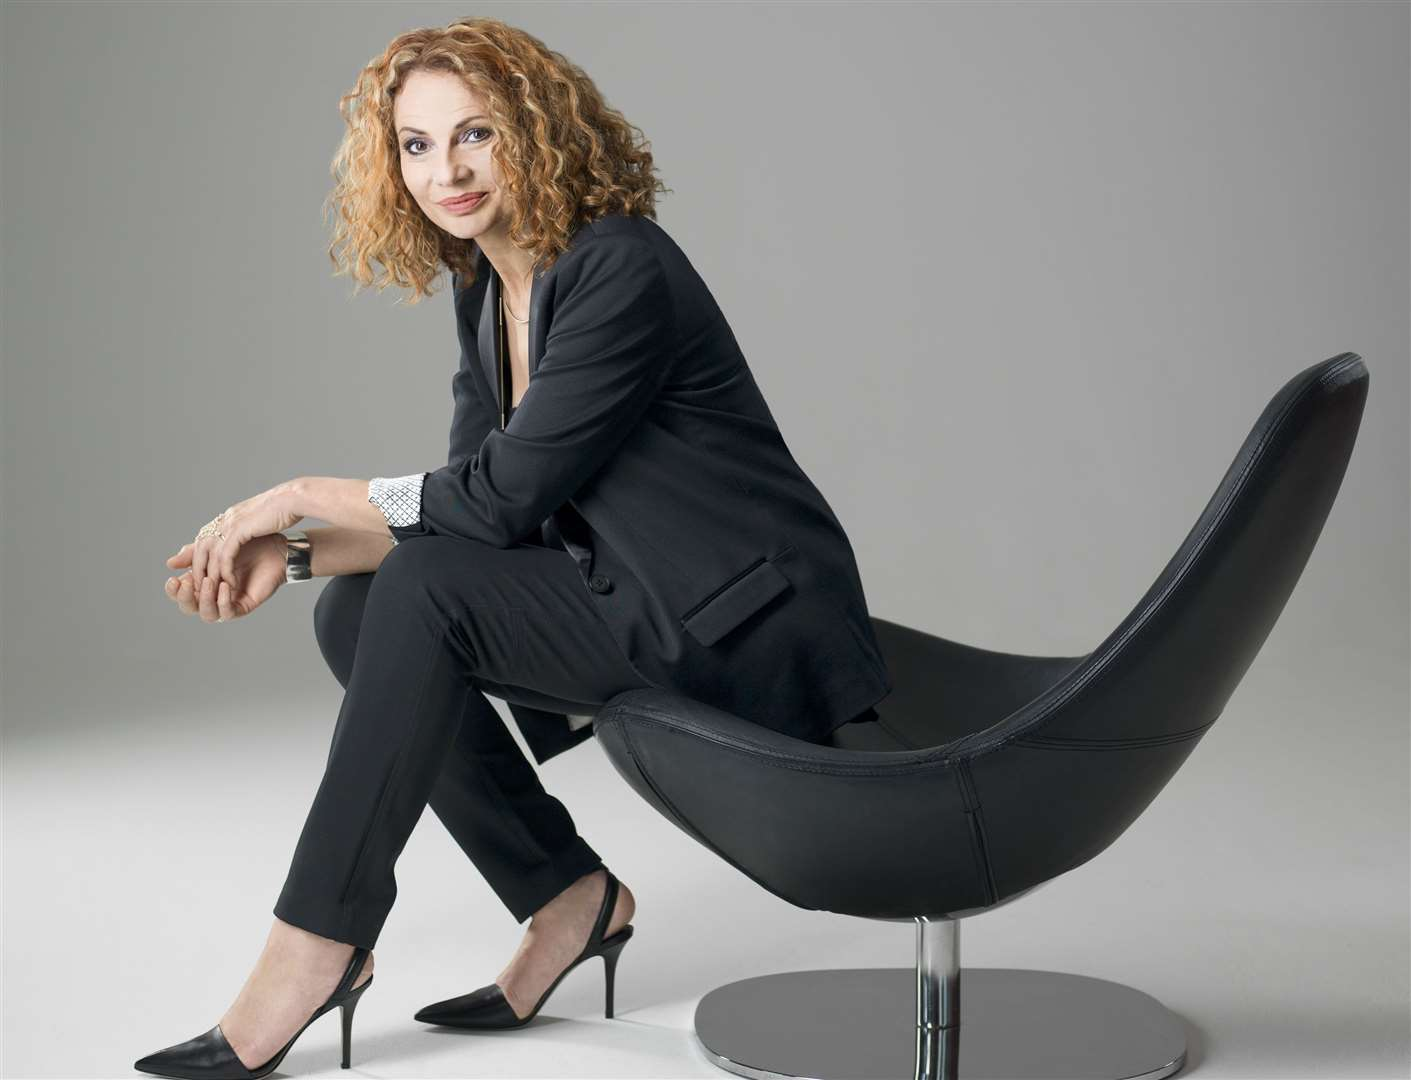 Pianist Joanna MacGregor will perform at the Canterbury Festival